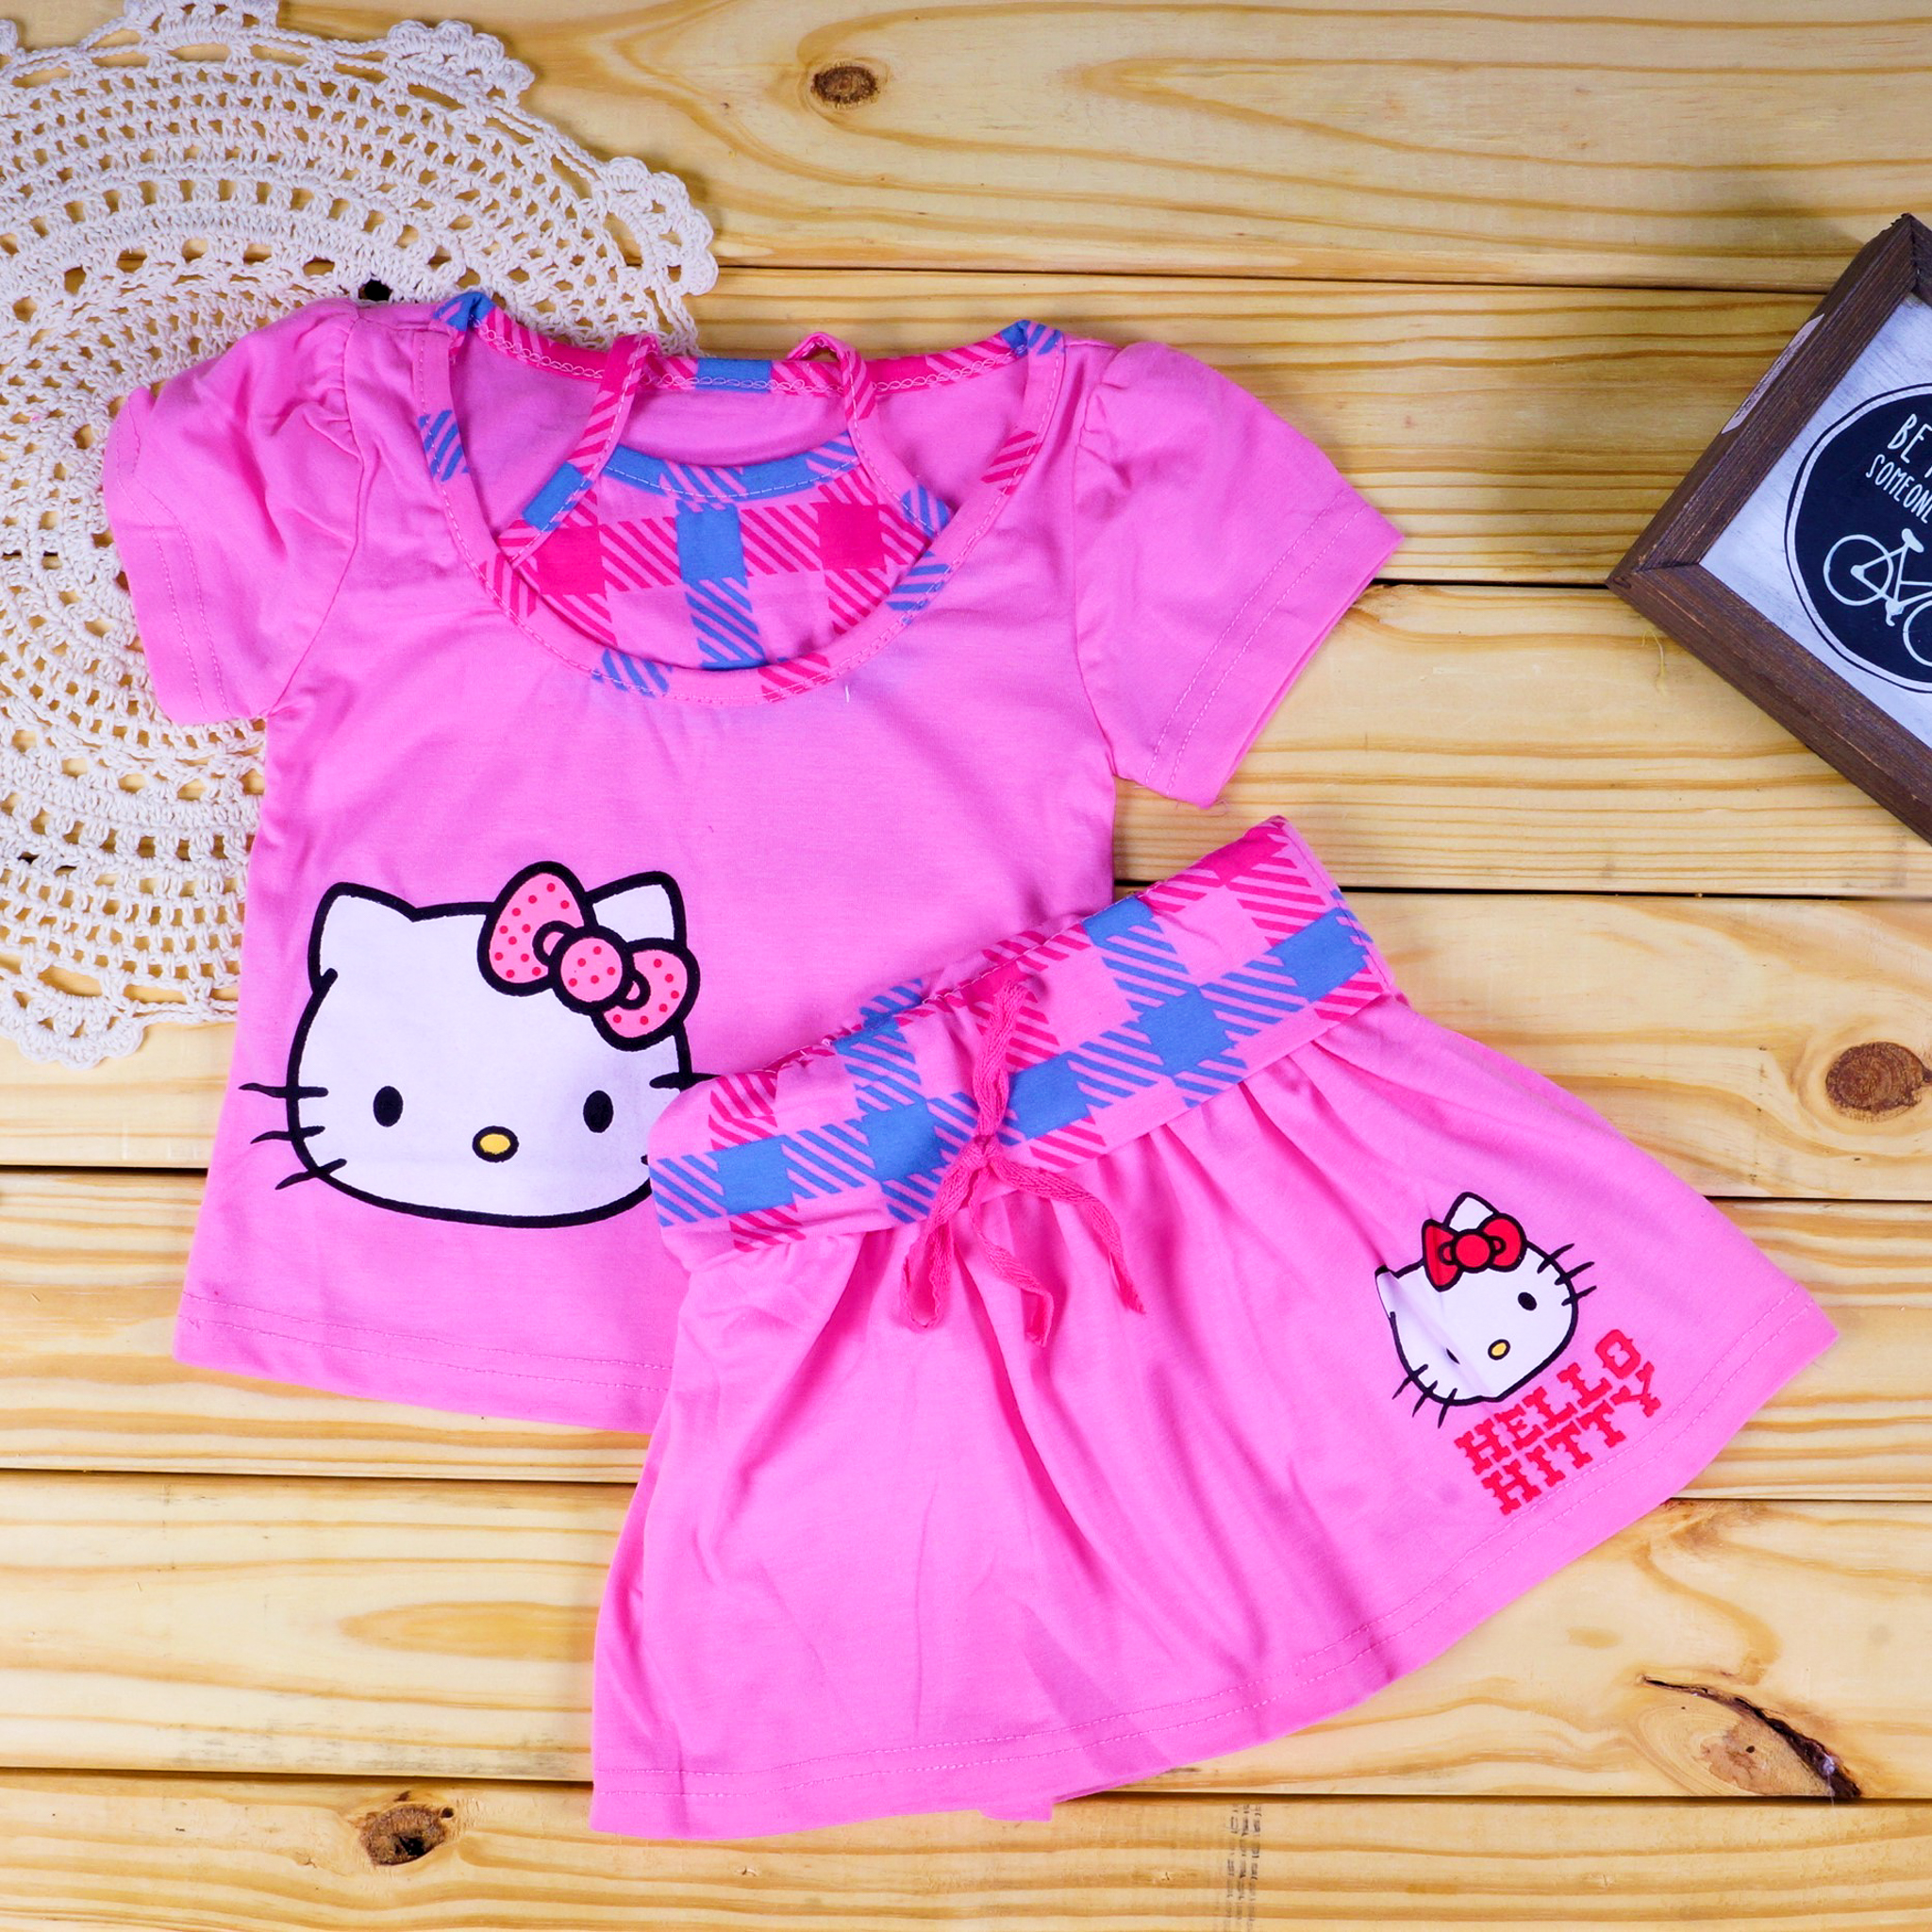 2f1e4fa77 Hello Kitty Halter Neck Pink Top and Skirt Set - On Sale 50% Off